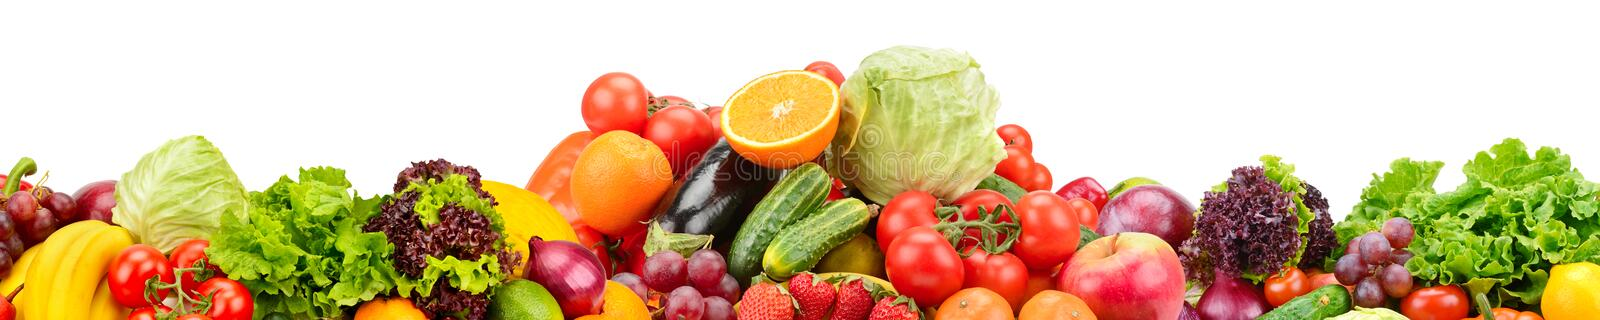 Panorama of fresh fruits and vegetables useful for health isolated on white background. stock illustration